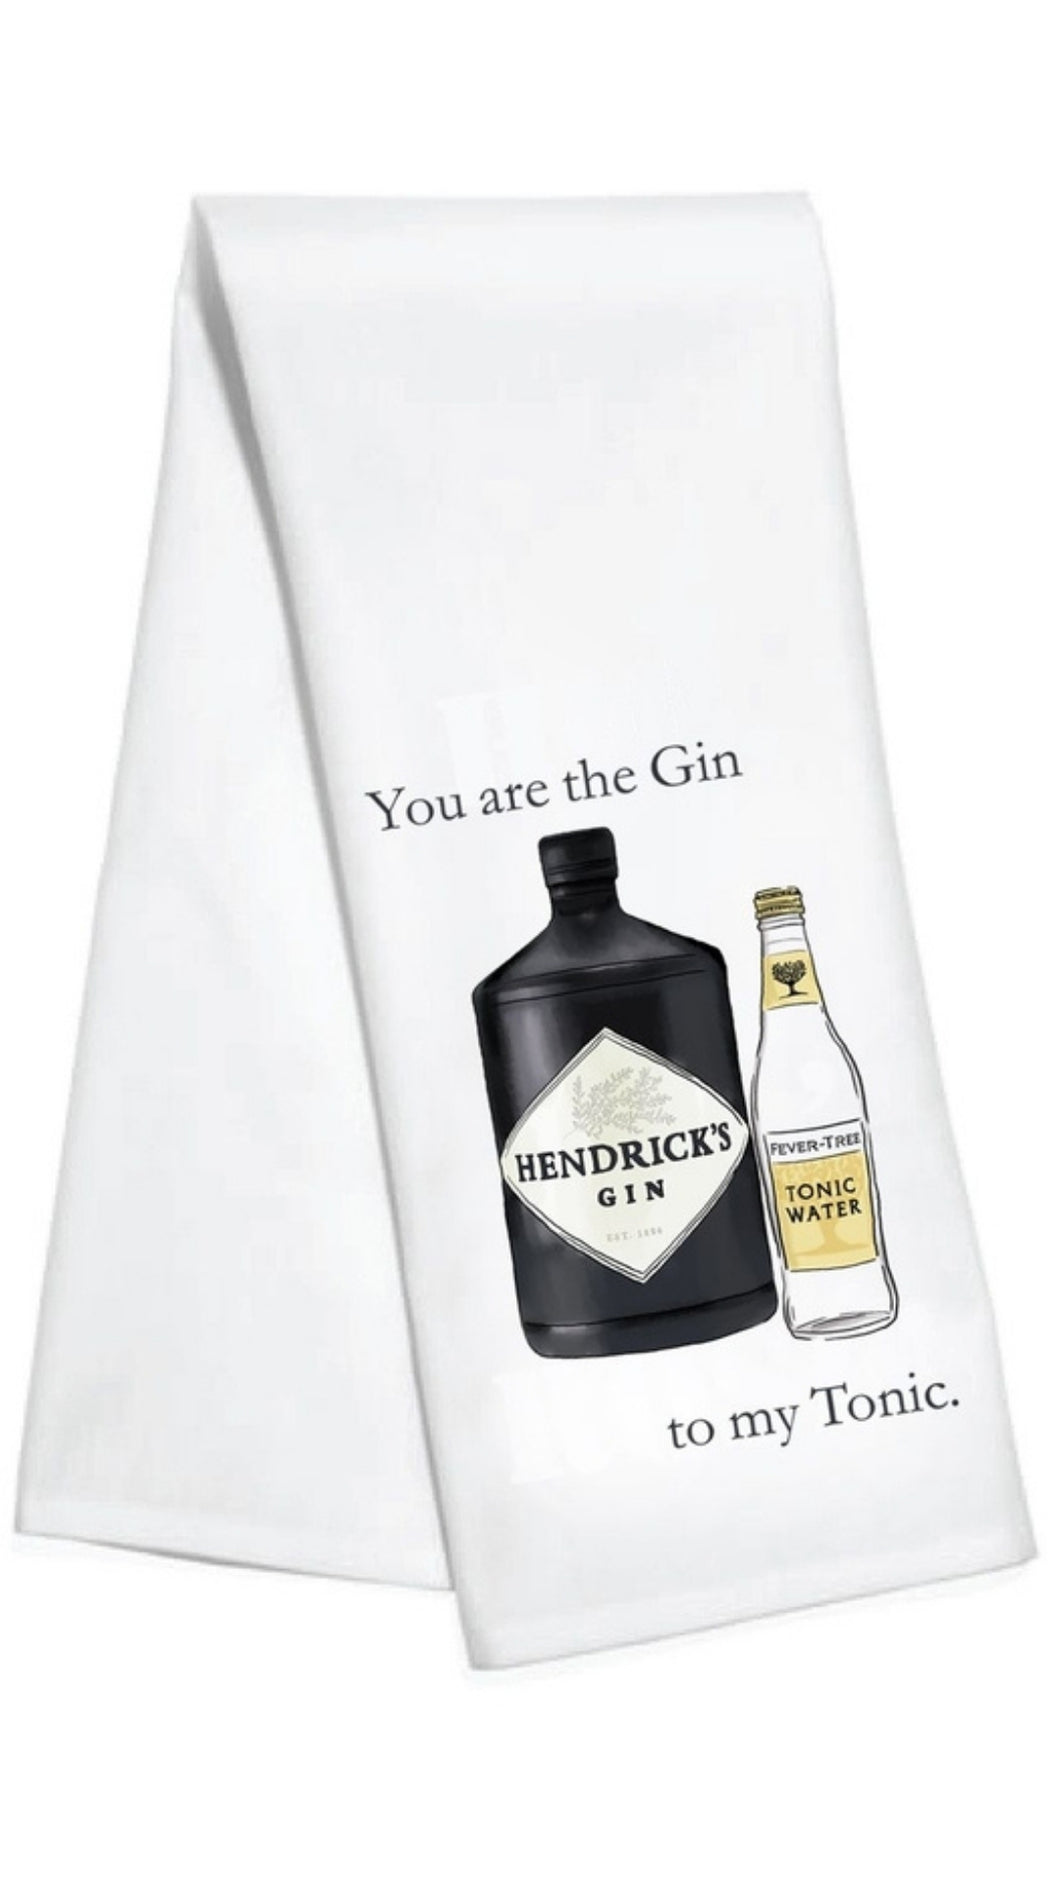 My Gin Tea Towel